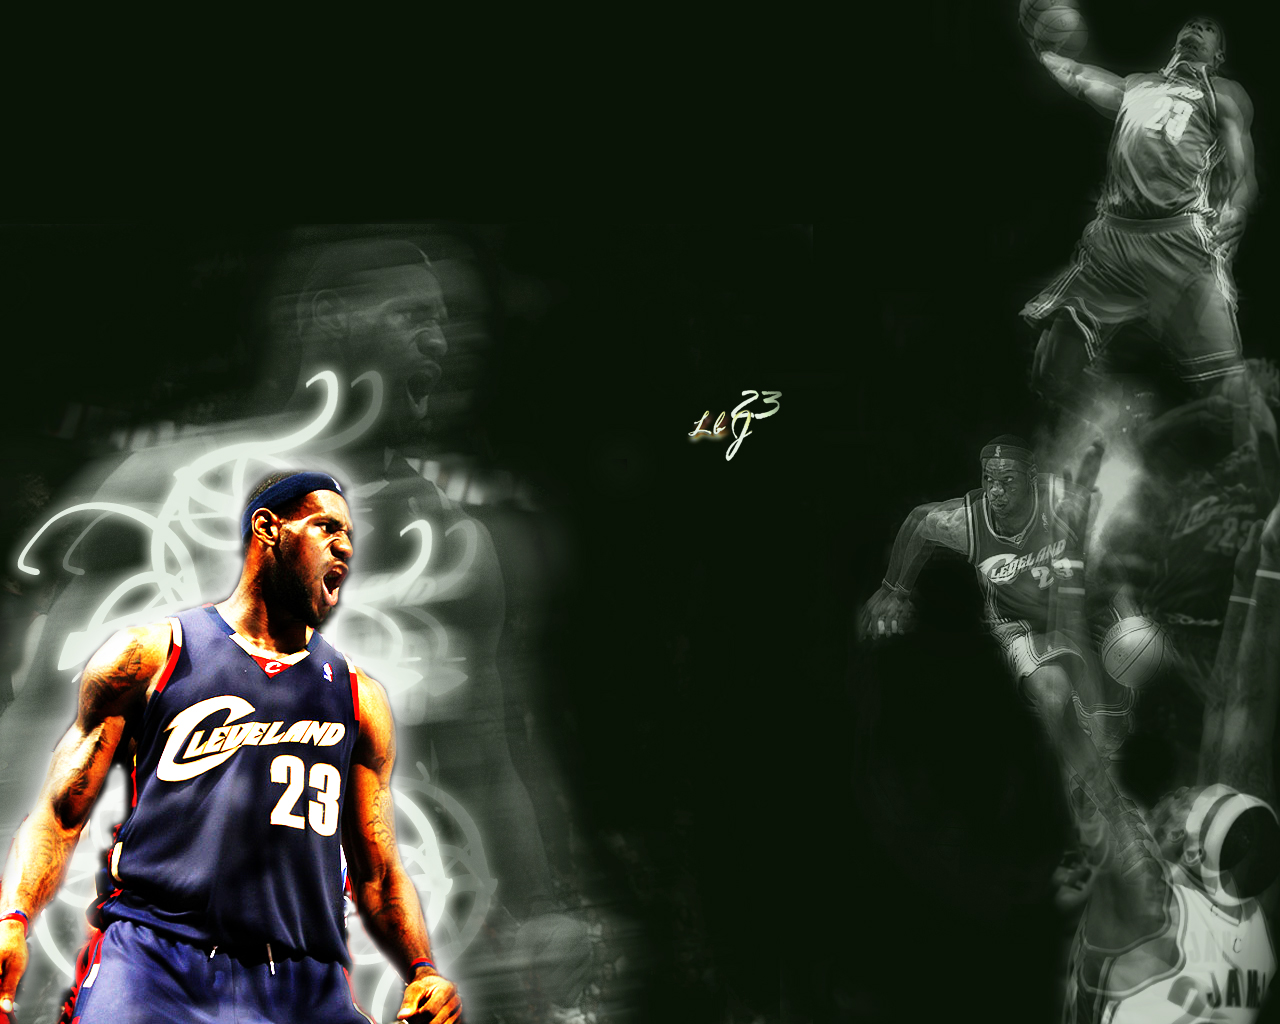 Sport Wallpaper Basketball: Live Sports: Basketball Wallpapers